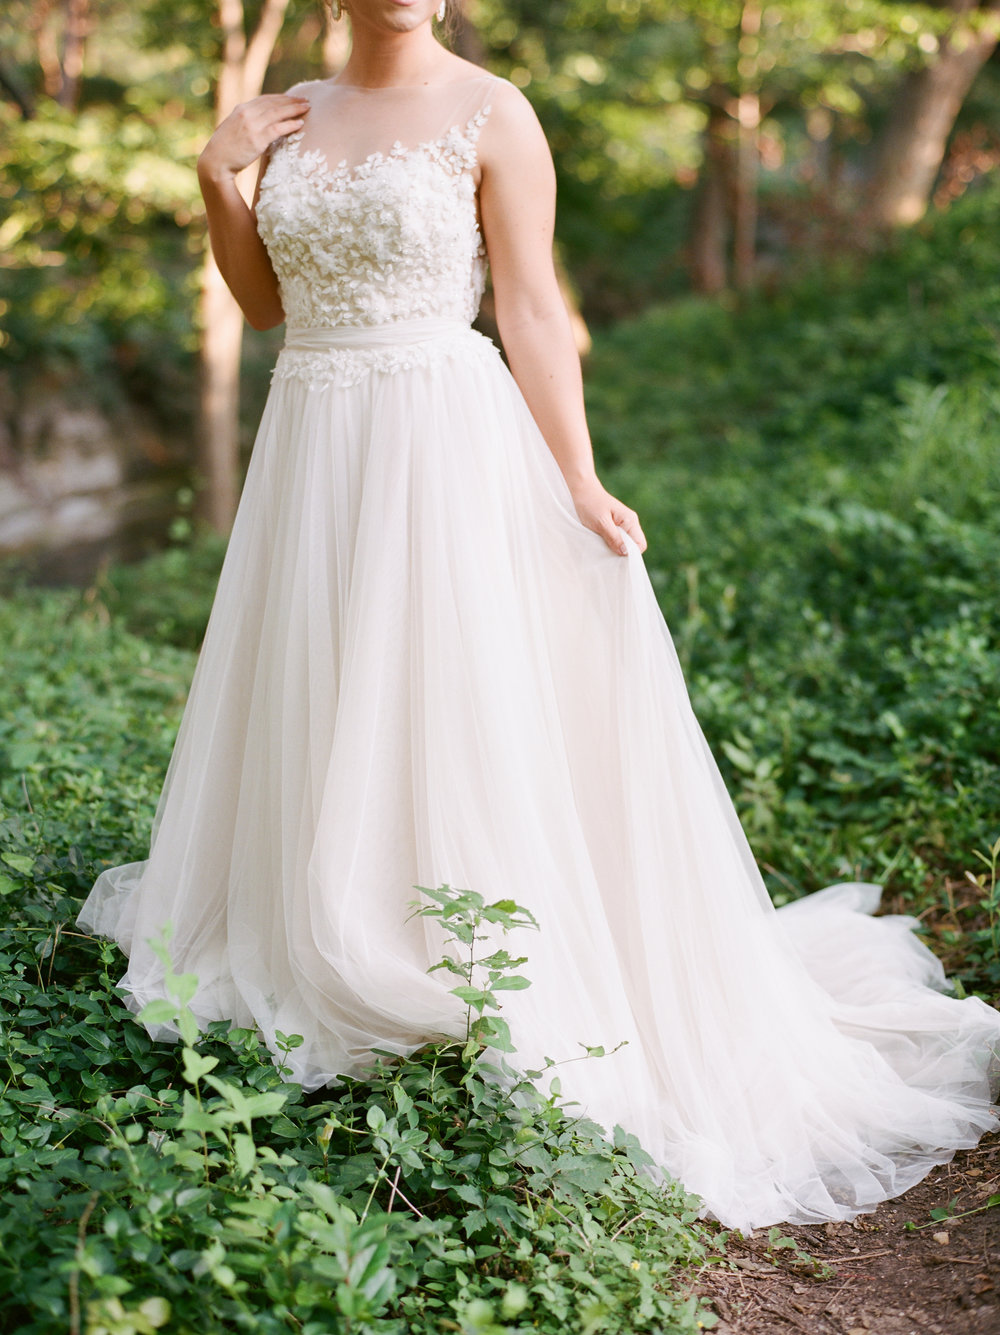 dallas-texas-prather-park-bridals-ar-photohraphy-miranda-75.jpg